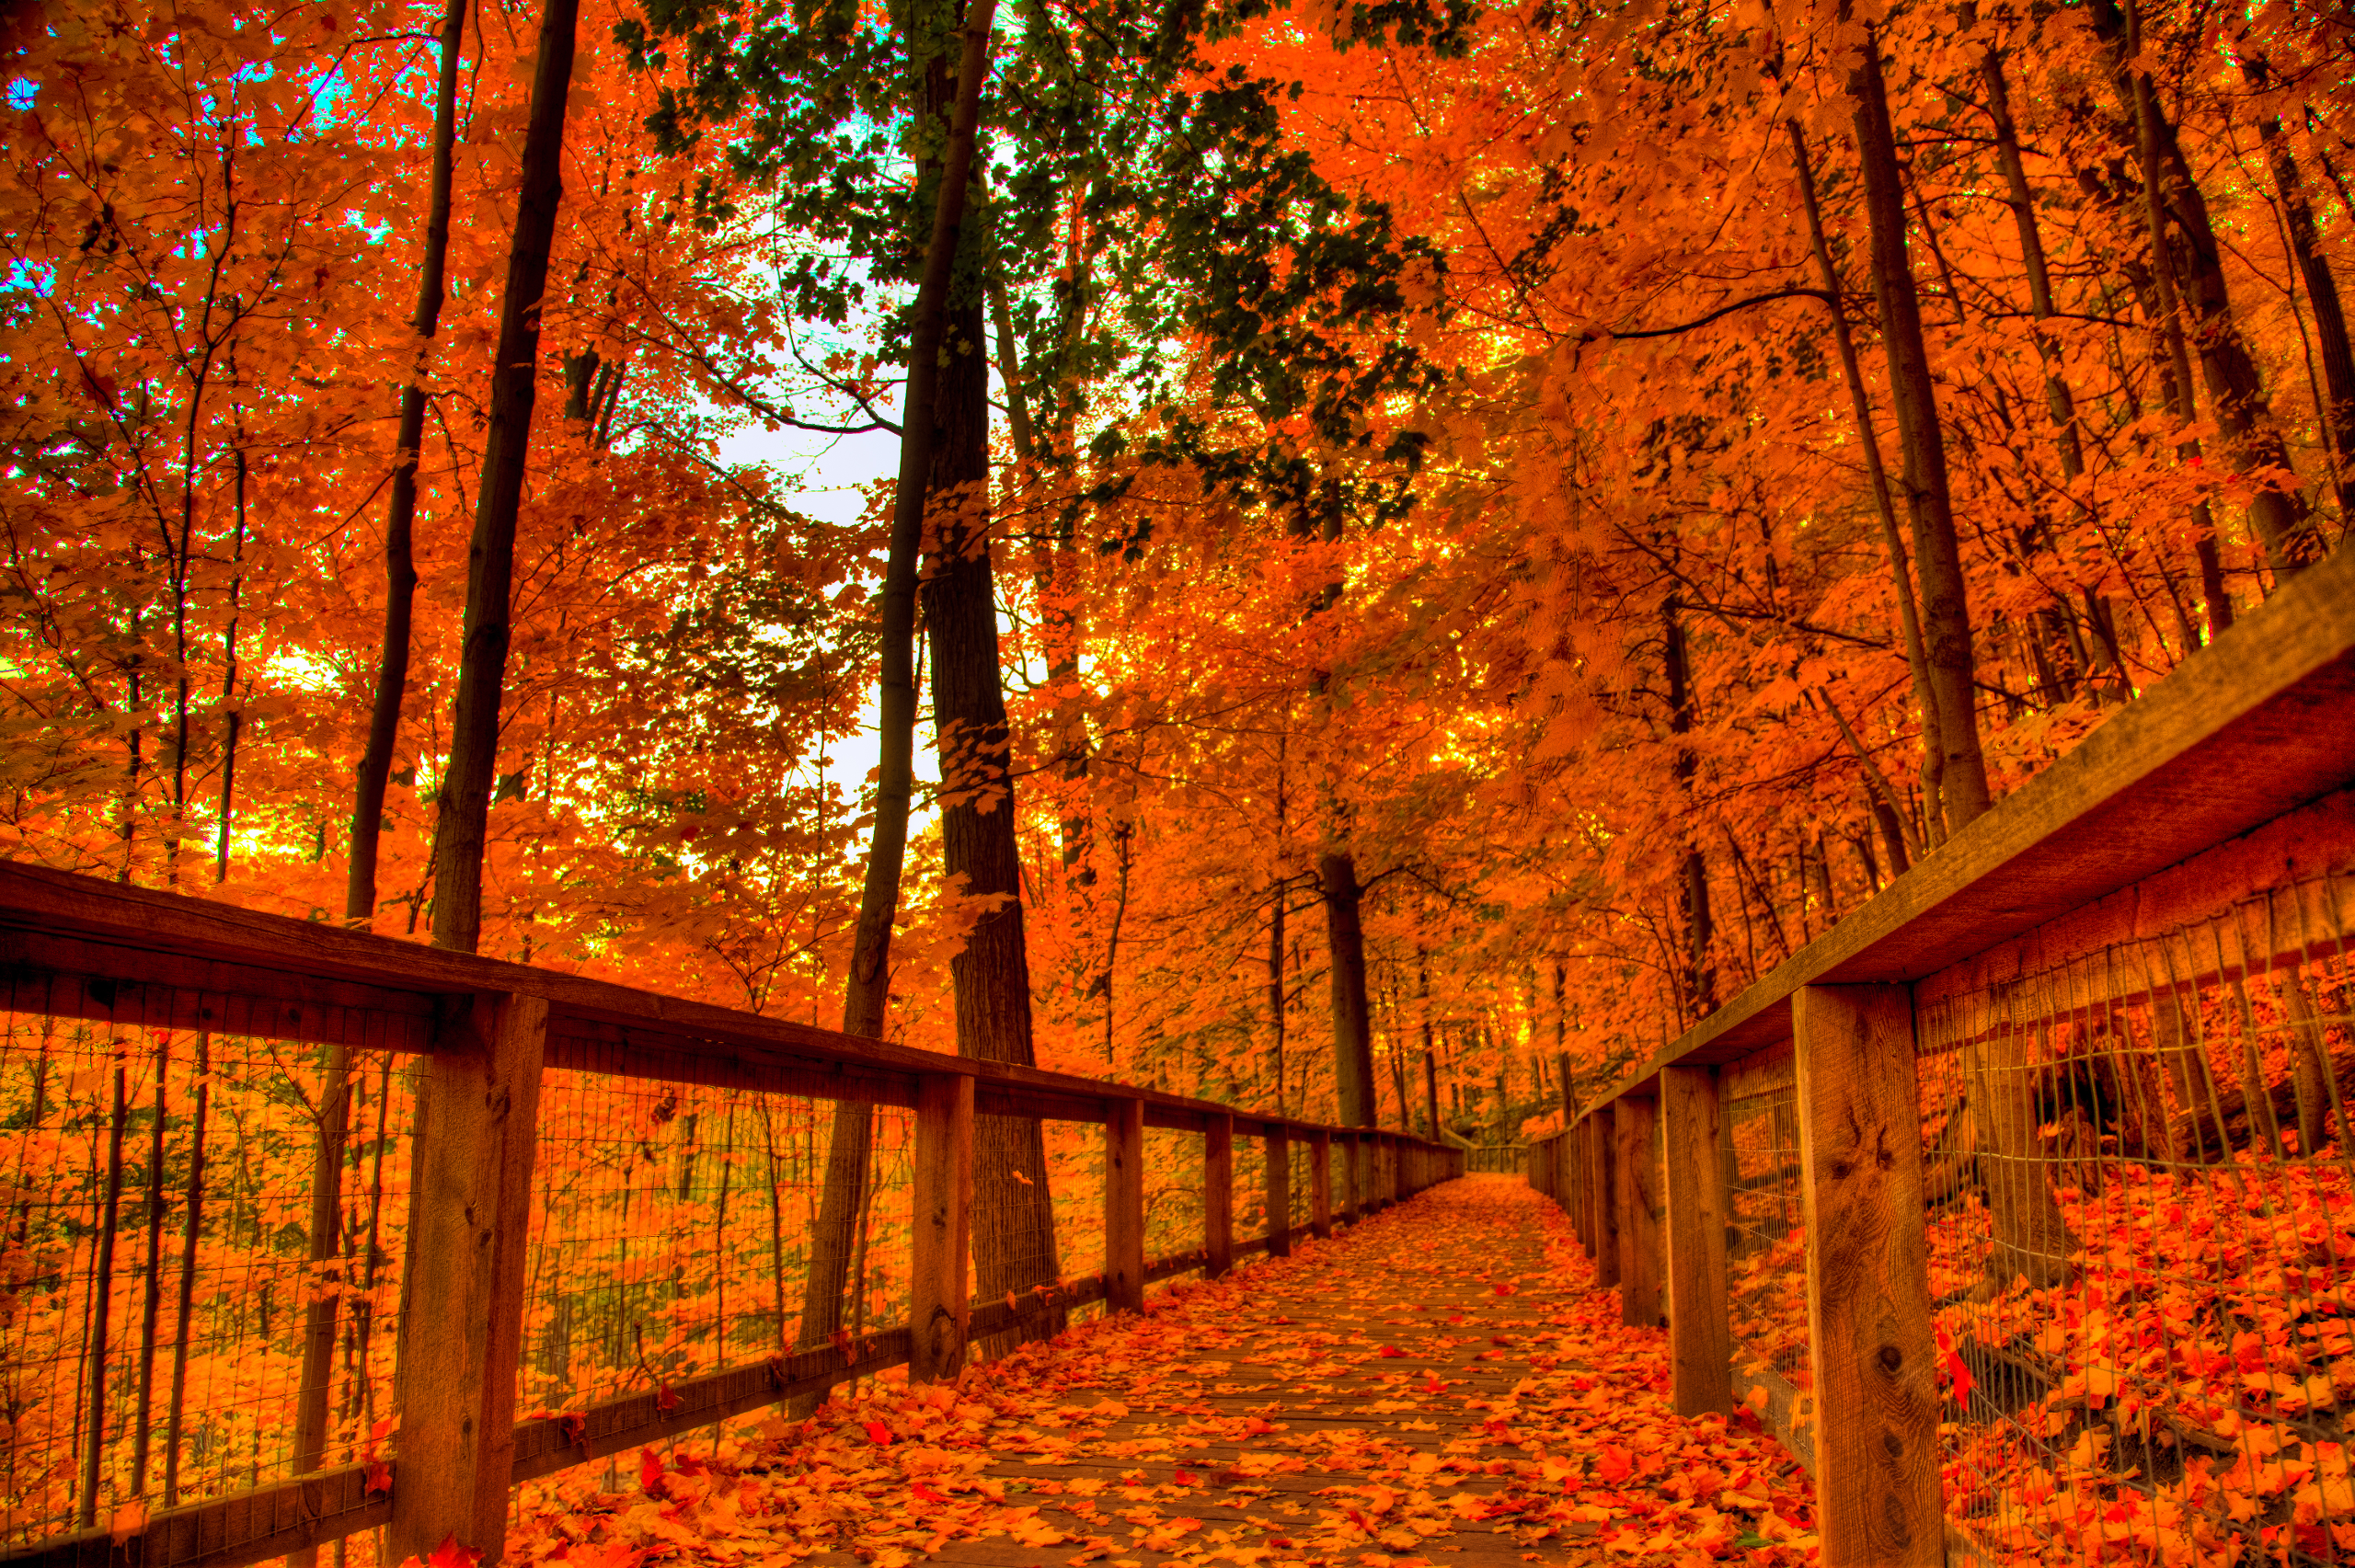 orange a· pumpkins a· vermont foliage a· leaves a· fall path a· gourds local offer android wallpaper